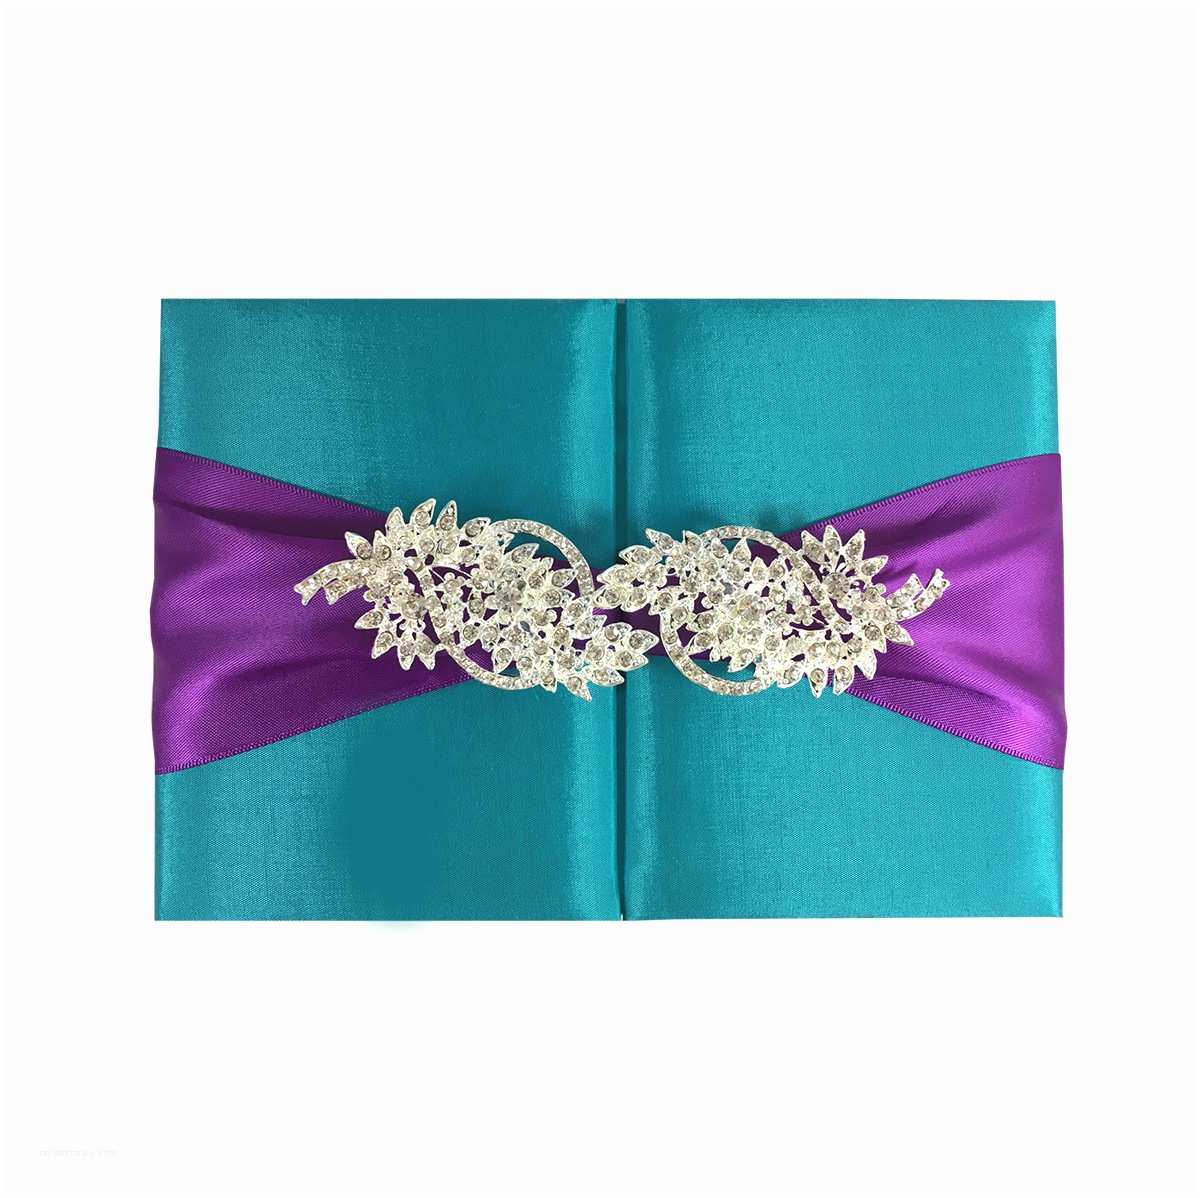 Ribbon Brooch Wedding Invitation Light Teal Color Silk Wedding Folder & Brooch Embellishment Luxury Wedding Invitations